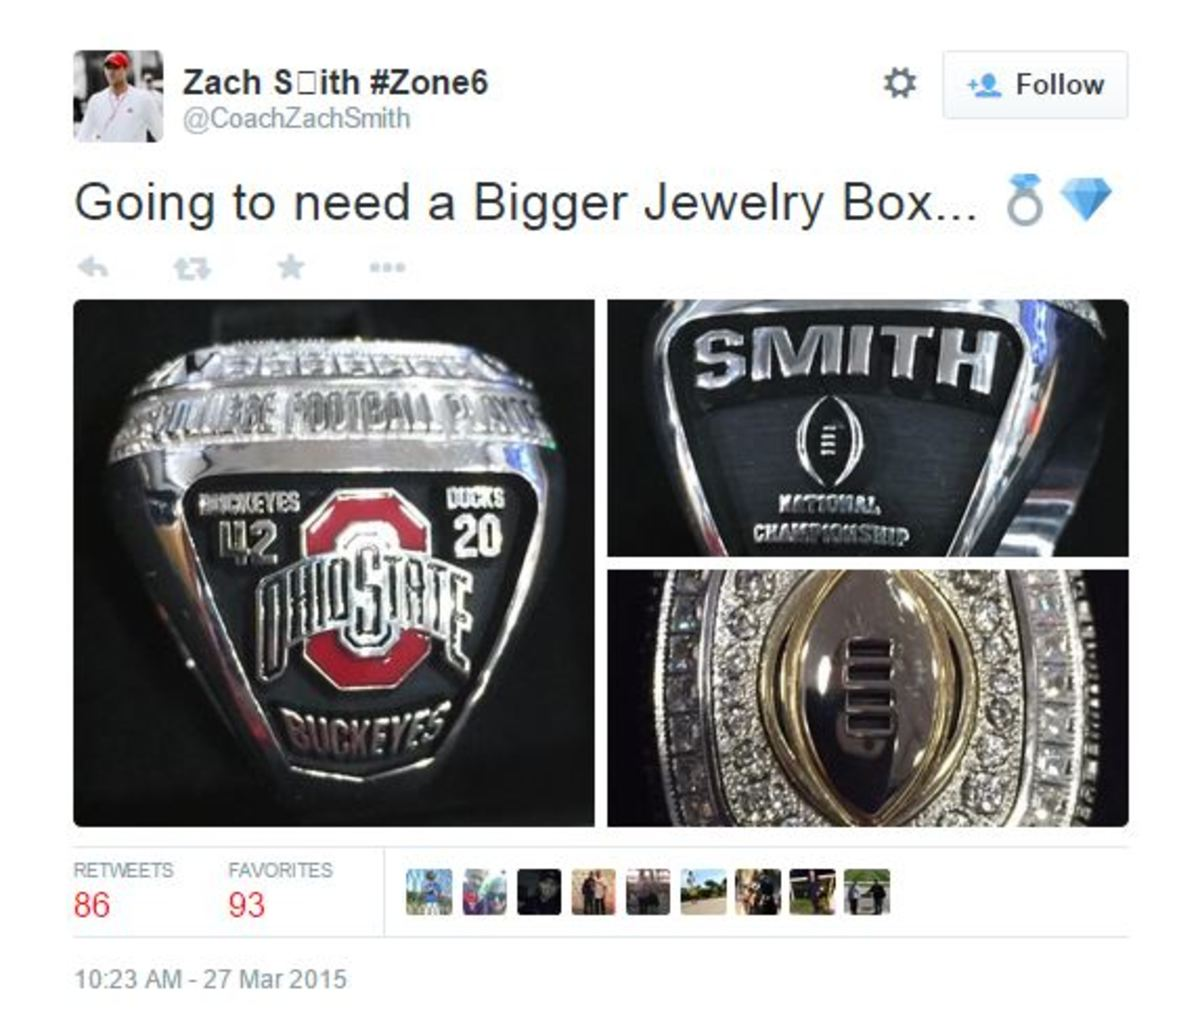 OhioStateRing